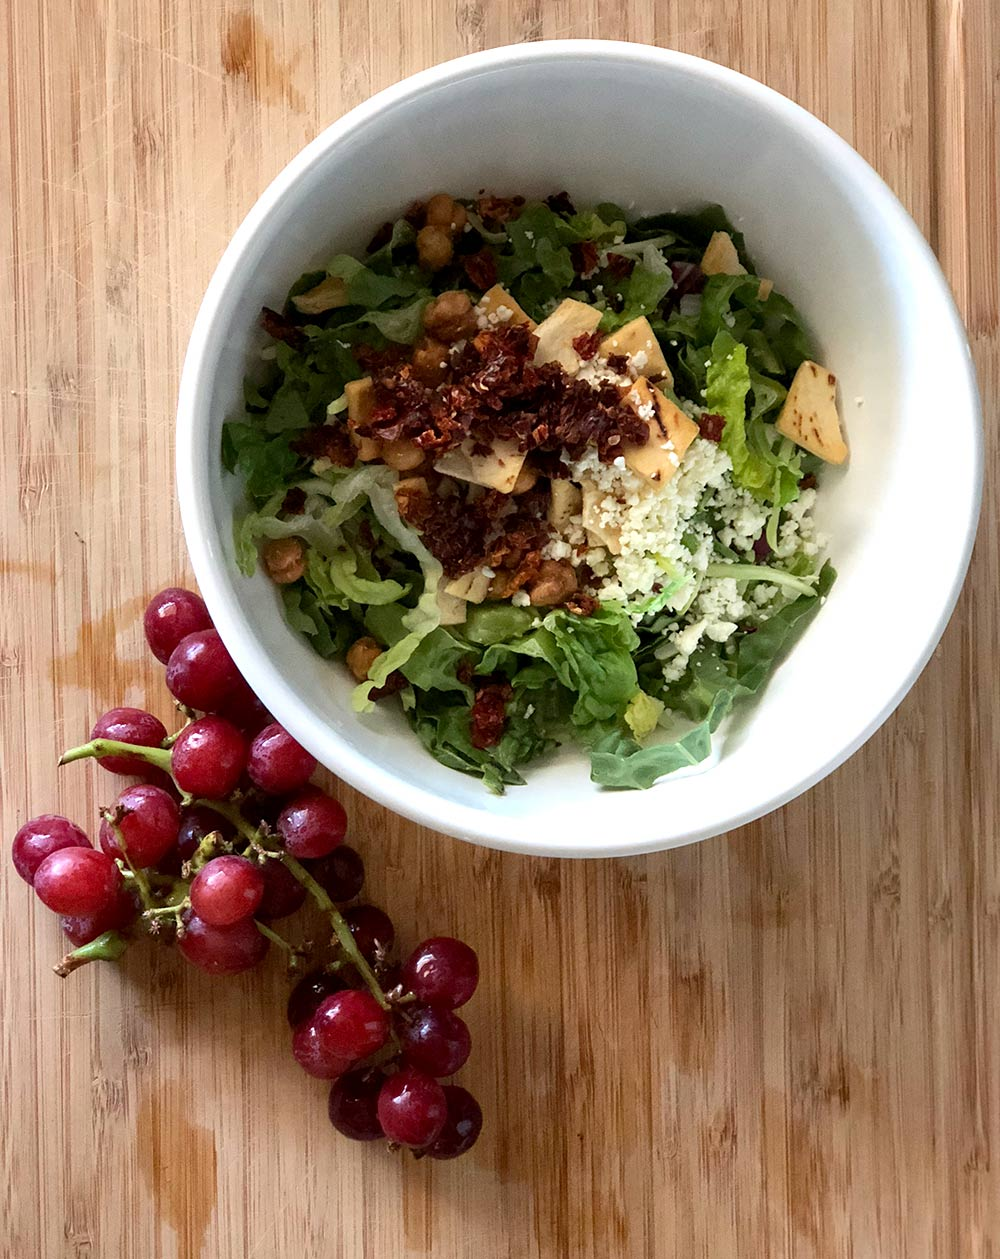 trader joes hacks salad in bowl with grapes